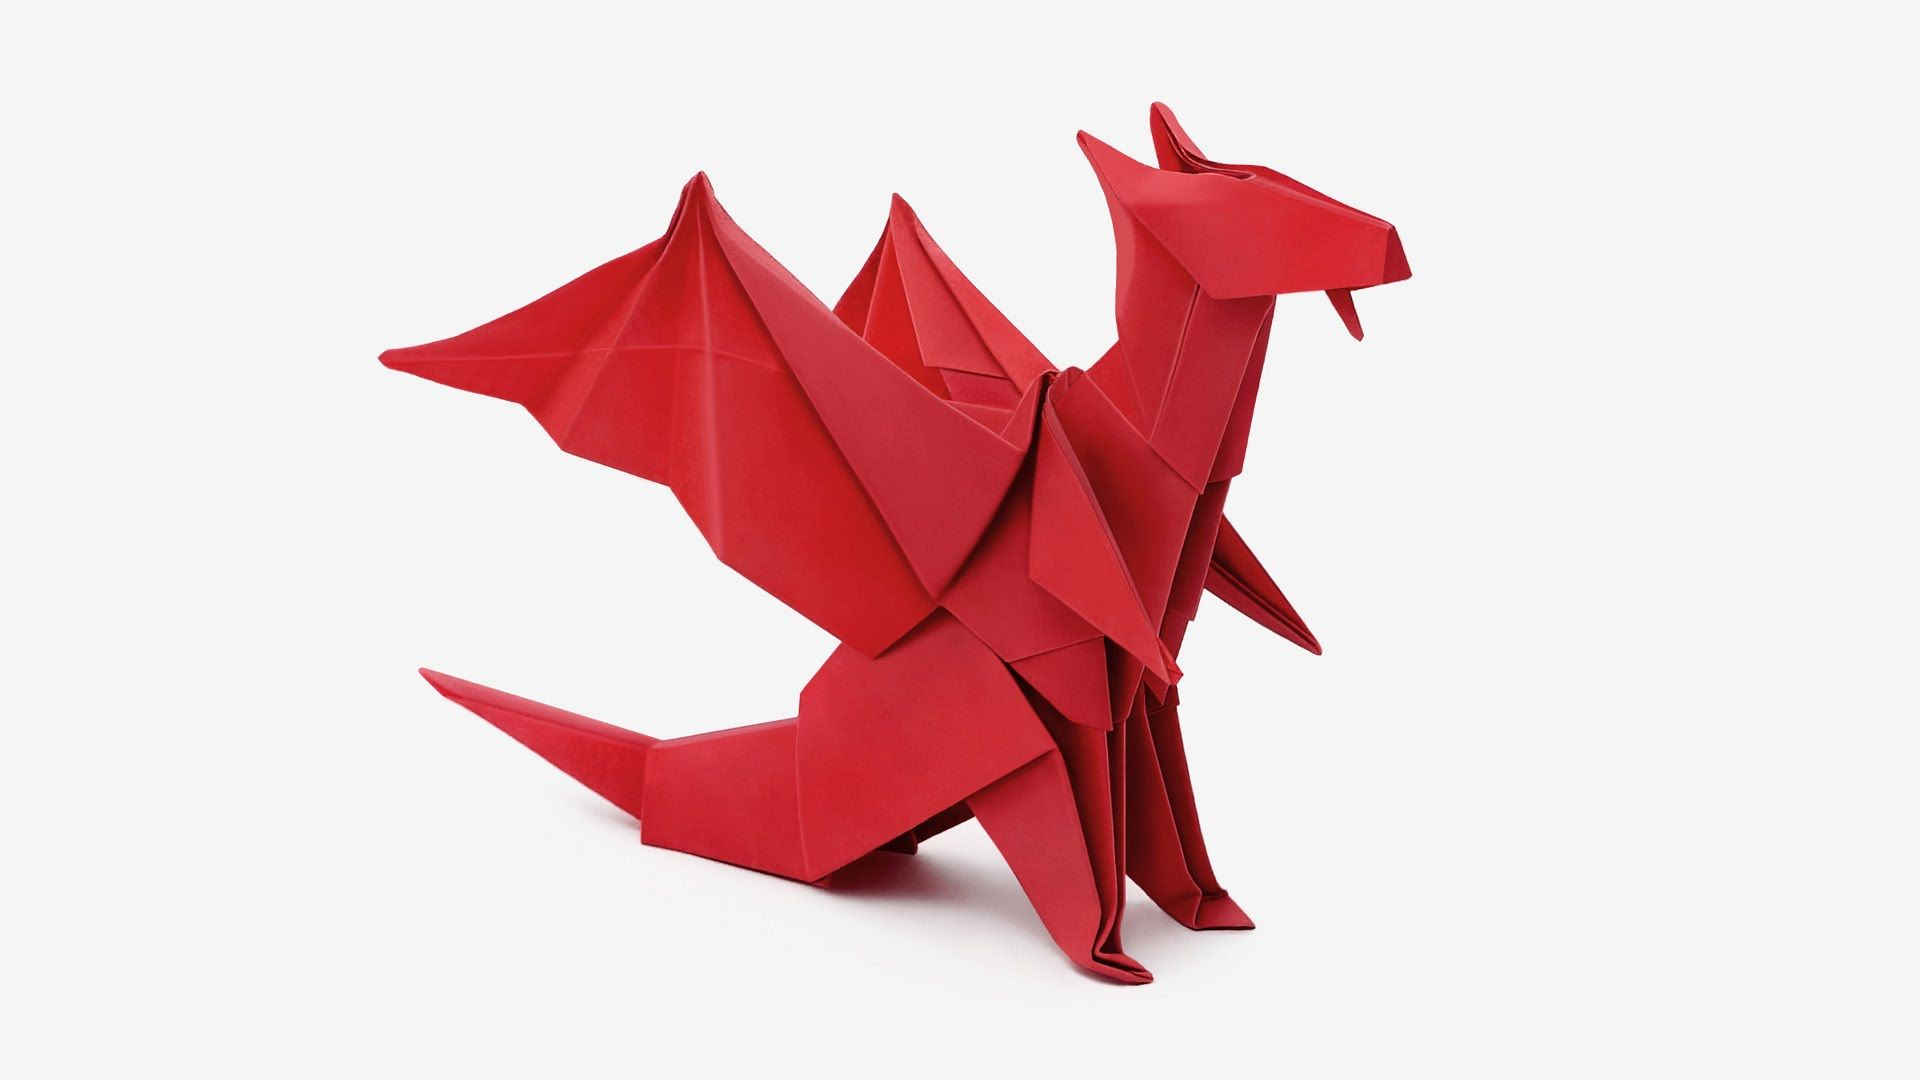 How To Make An Origami Dragon Designed By Jo Nakashima 20 Fev 2015 Difficulty Level Low Intermediate My Paper Red Tissue Foil From Shop 20cm